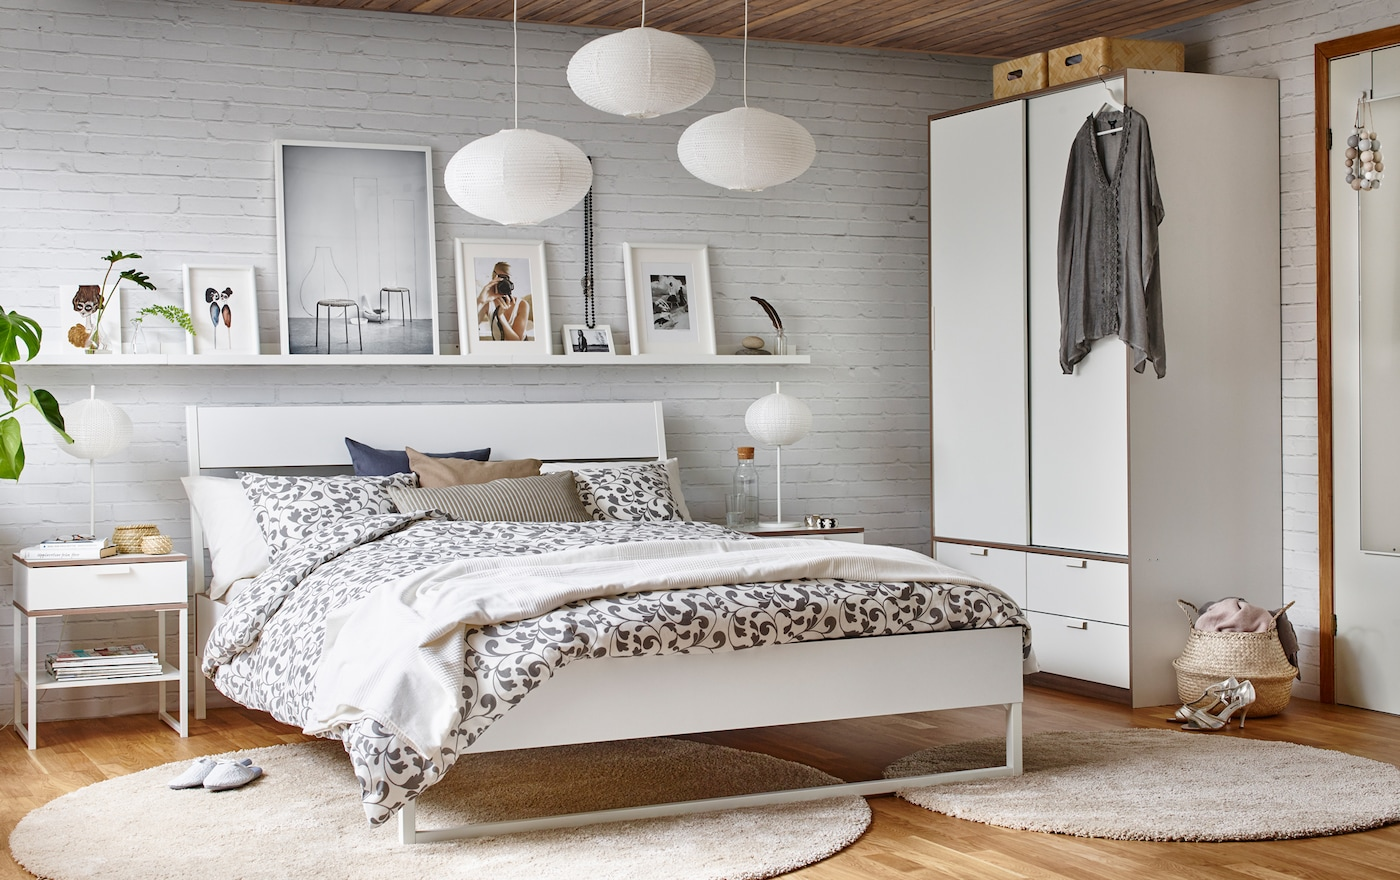 White with light grey bedroom with a wooden floor, white brick wall and double bed